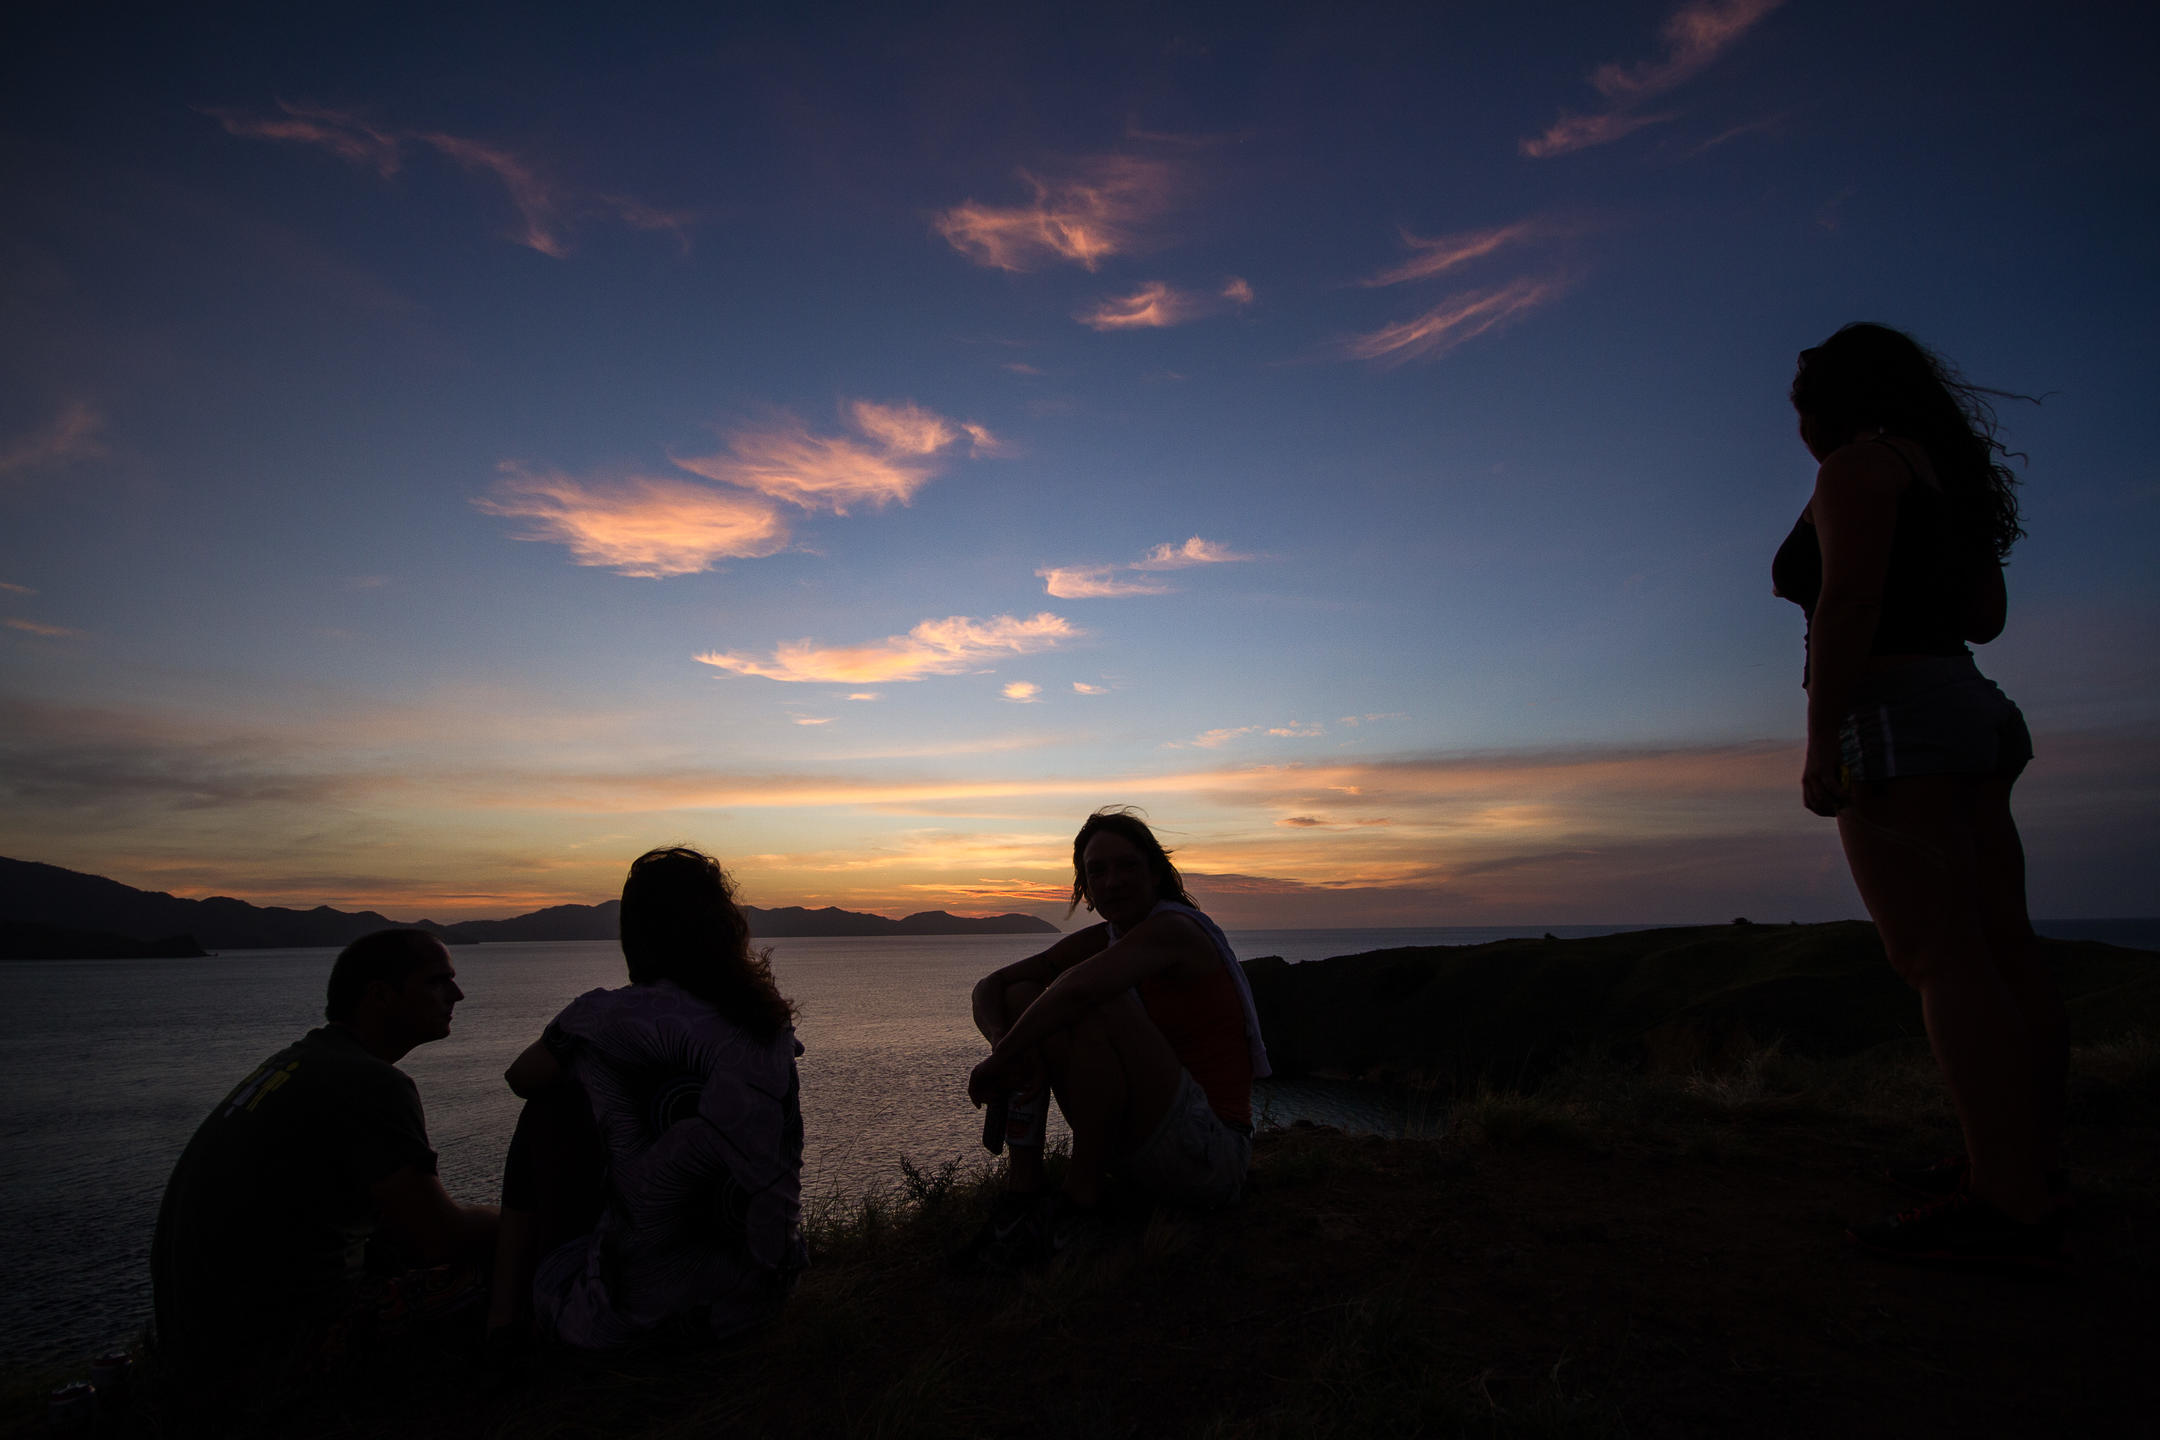 Four friends silhouetted as they watch the sunset